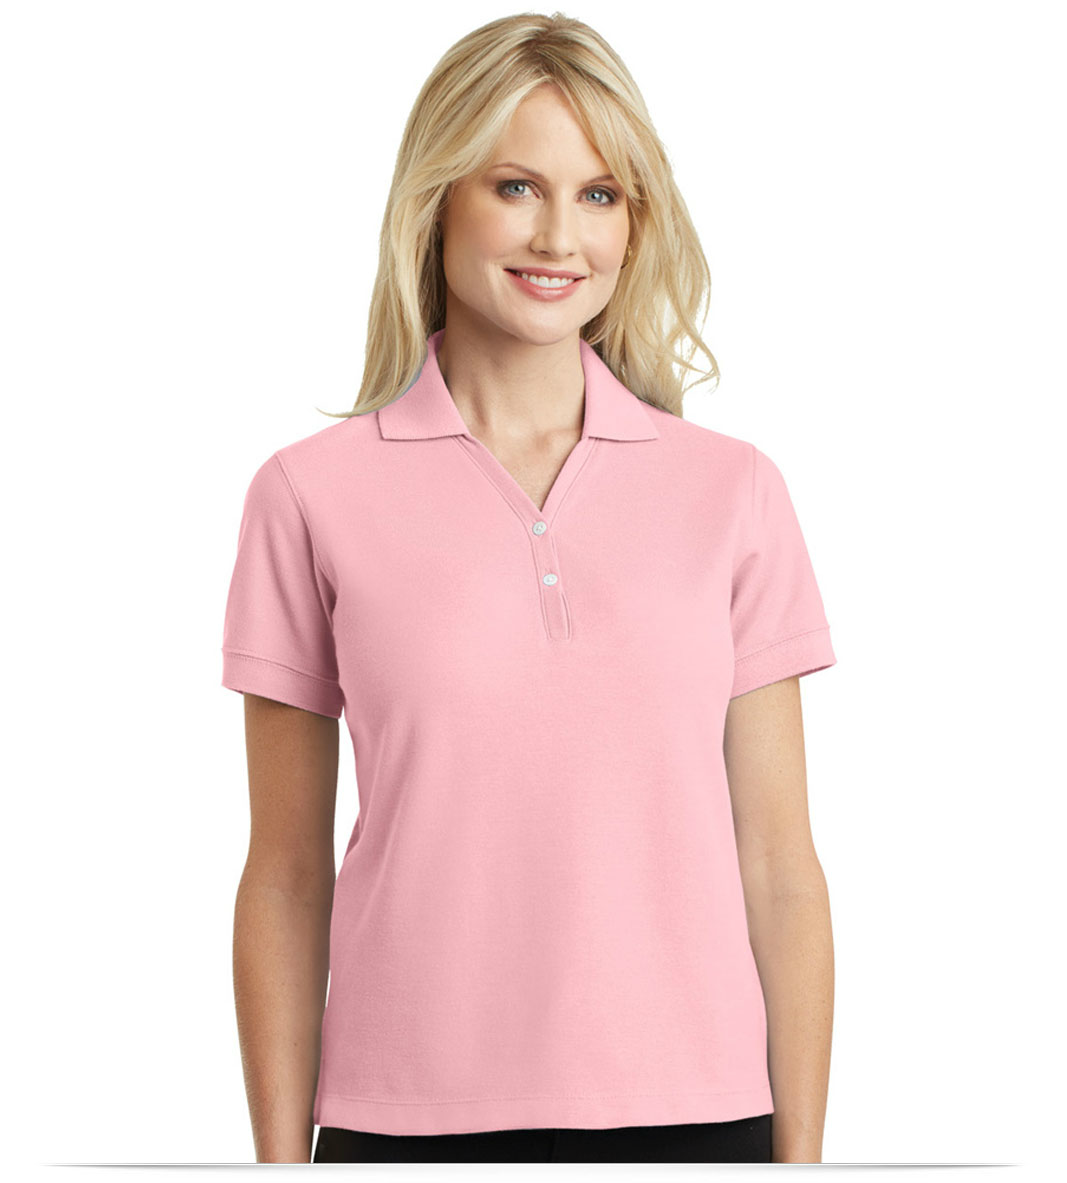 63a9d73552b 100% Cotton Embroidered Polo Shirt For Women